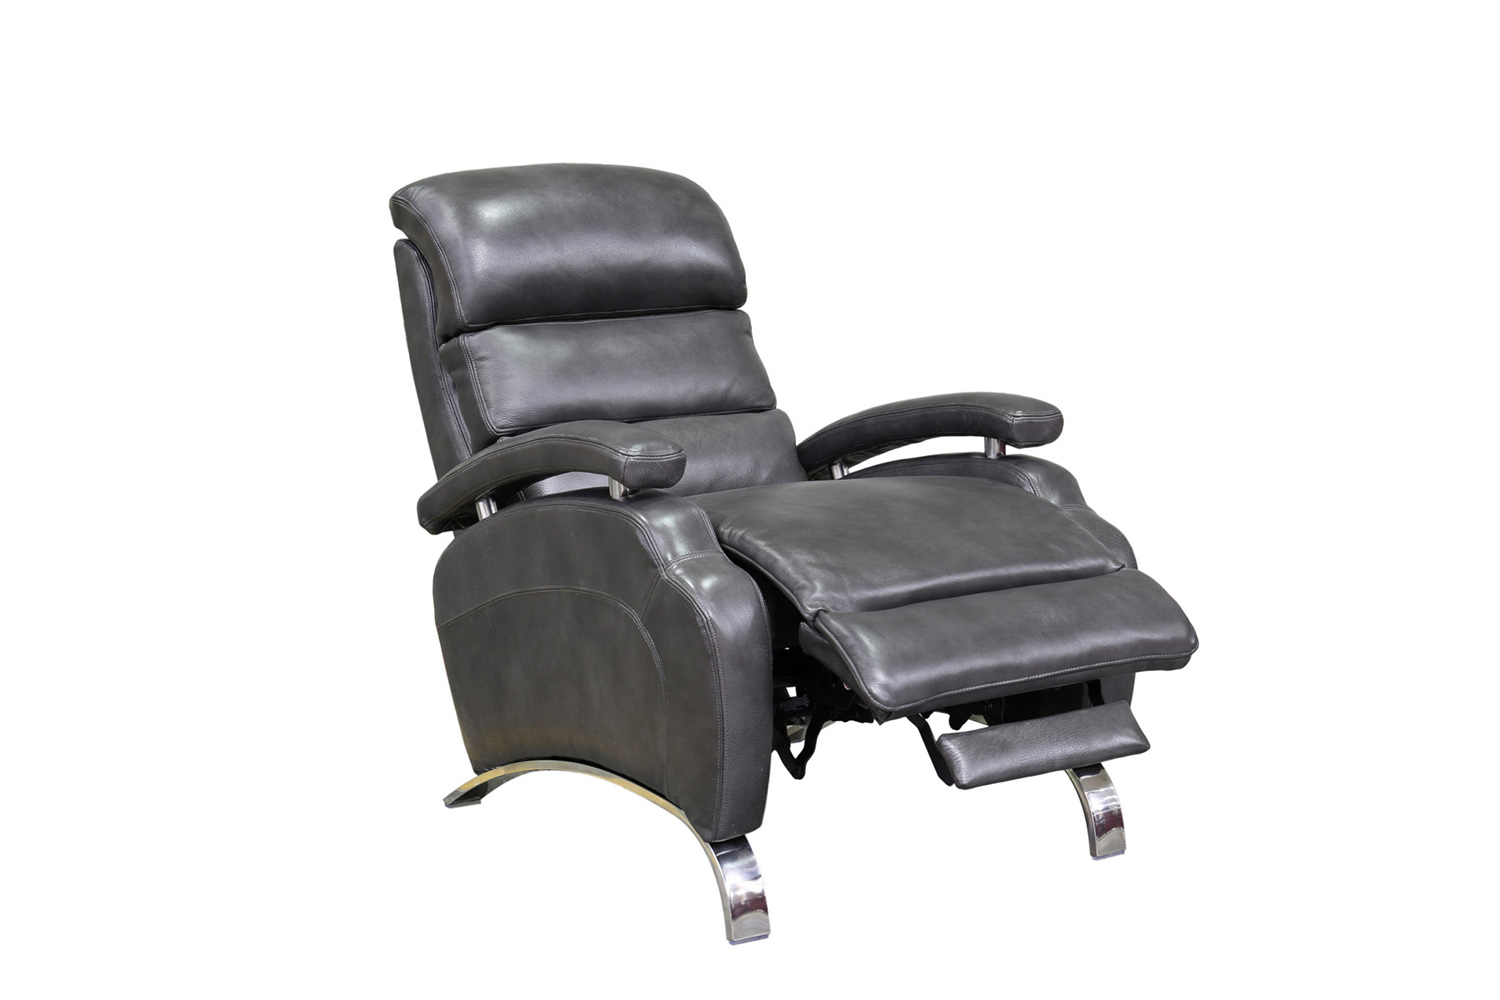 Barcalounger Giovanni Recliner Chair - Wrenn Gray/all leather